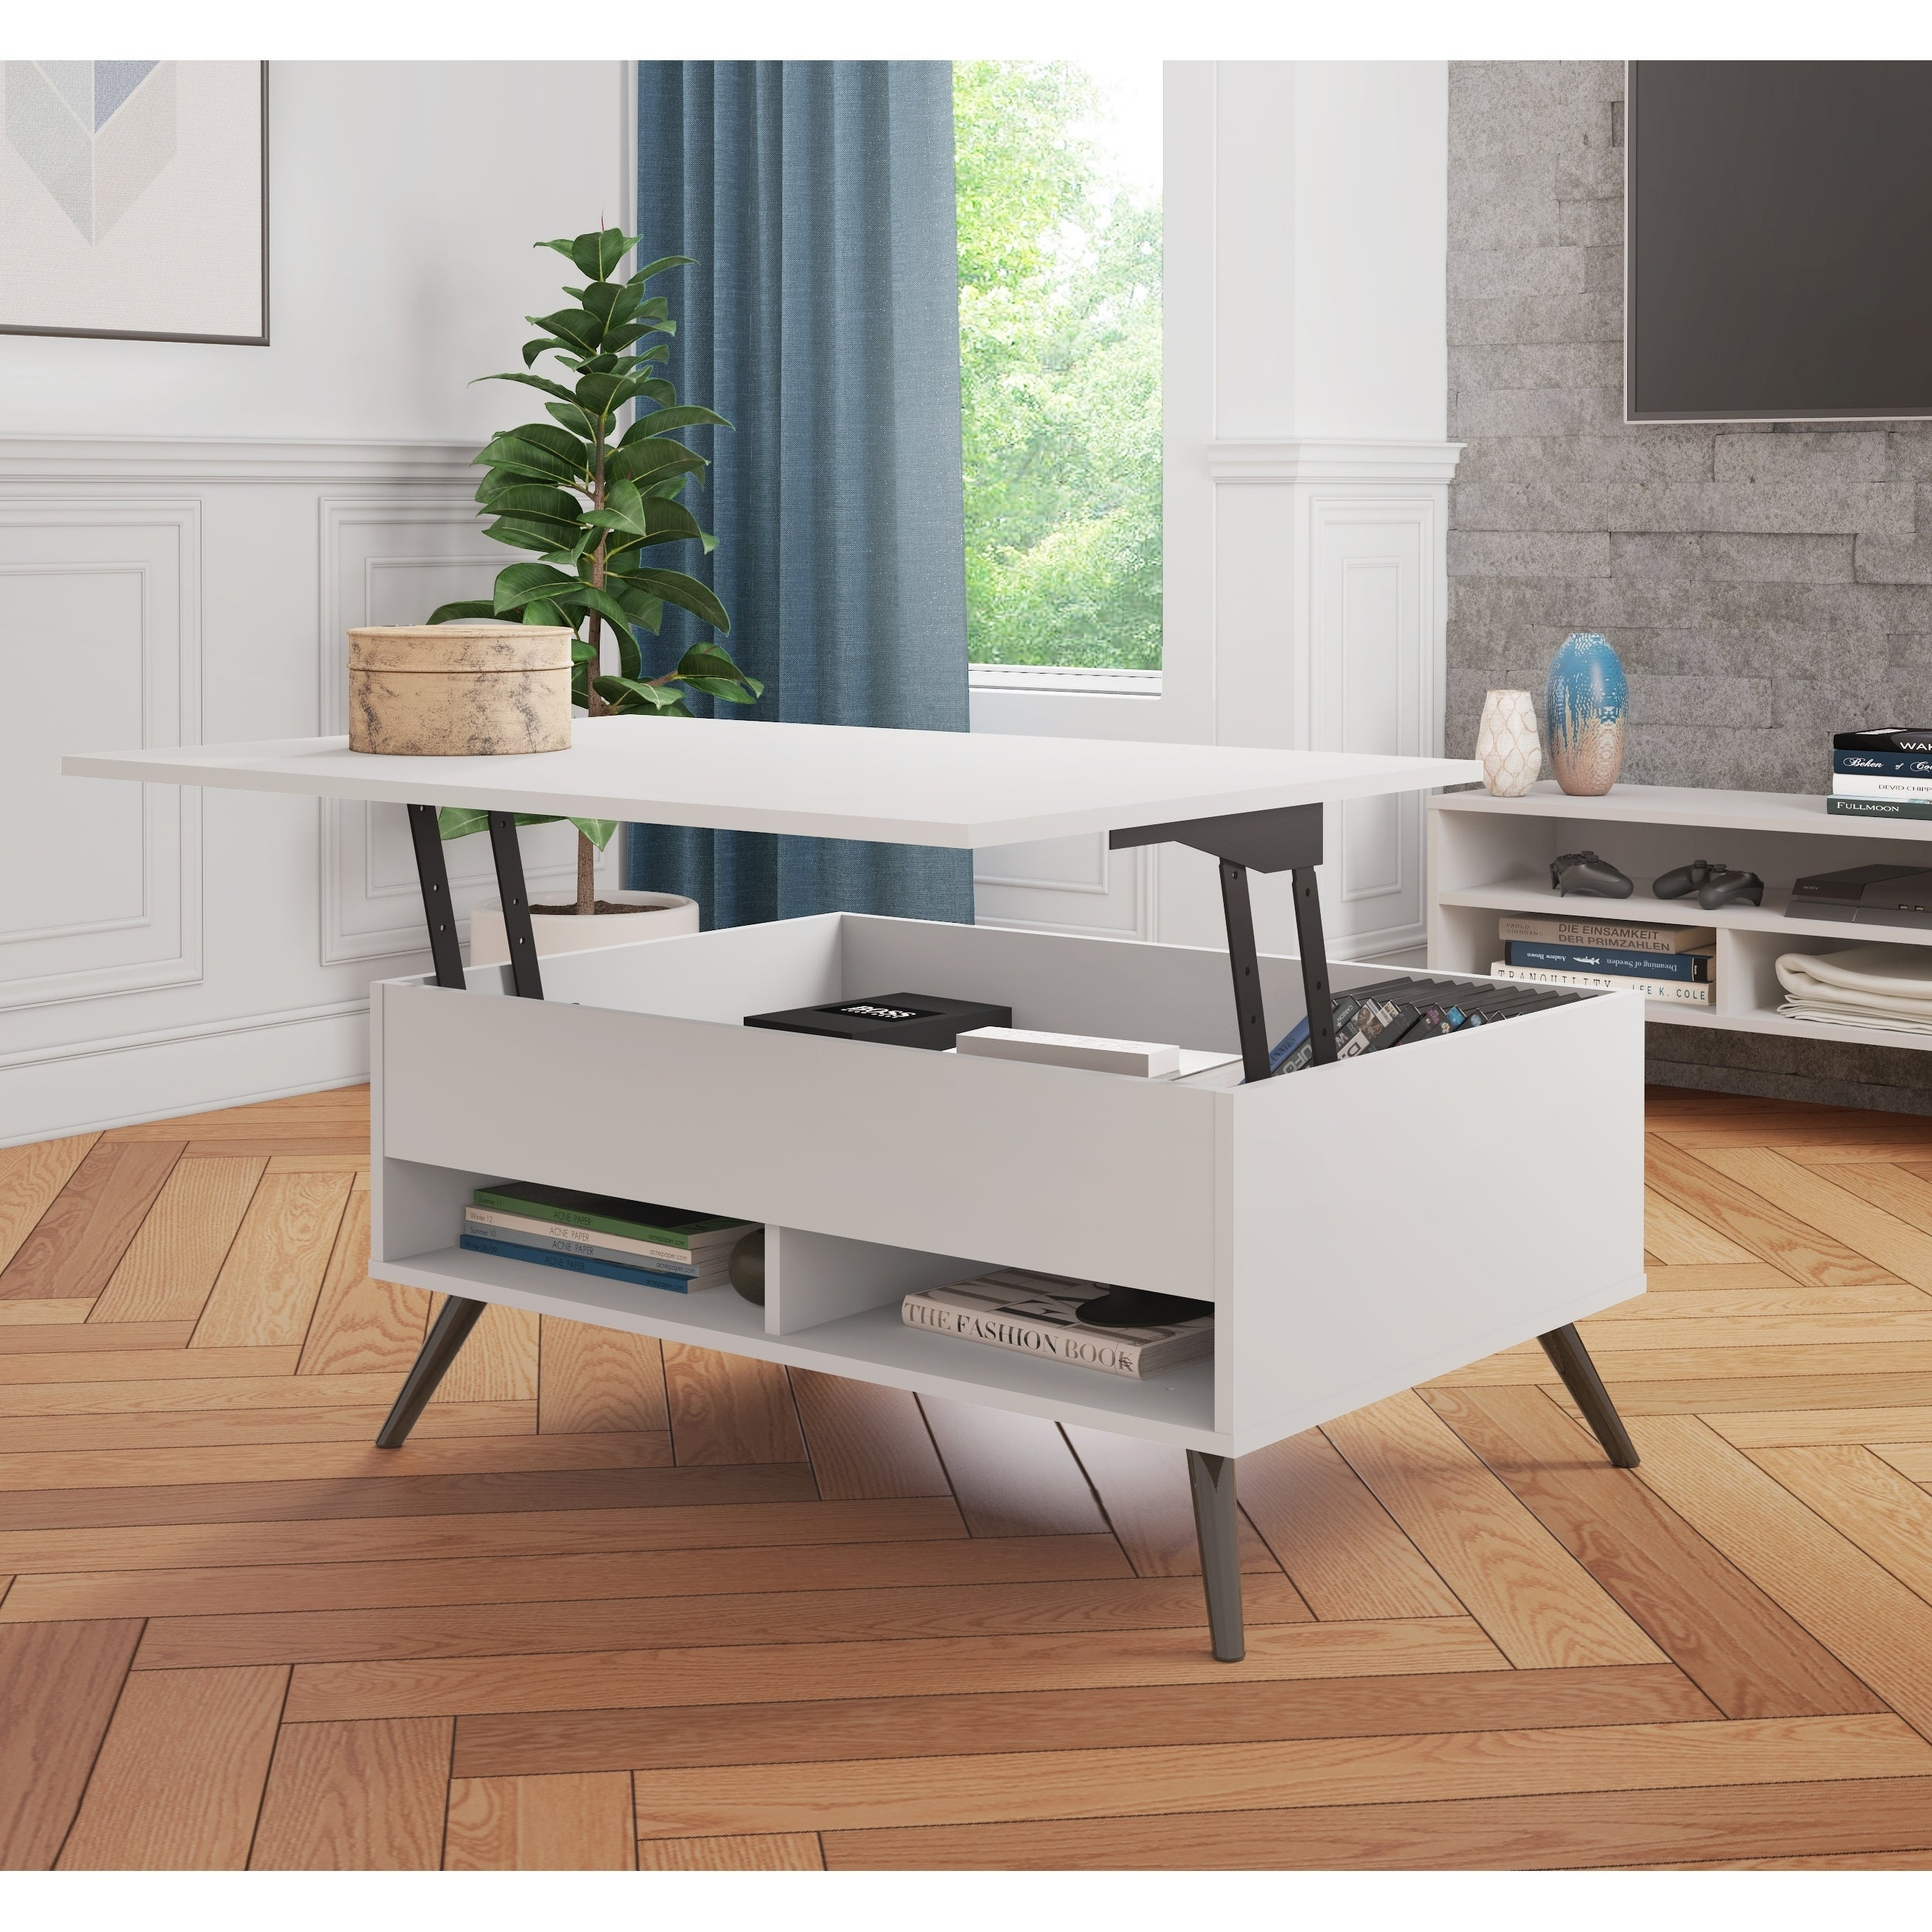 Bestar small space krom 37 inch lift top storage coffee table